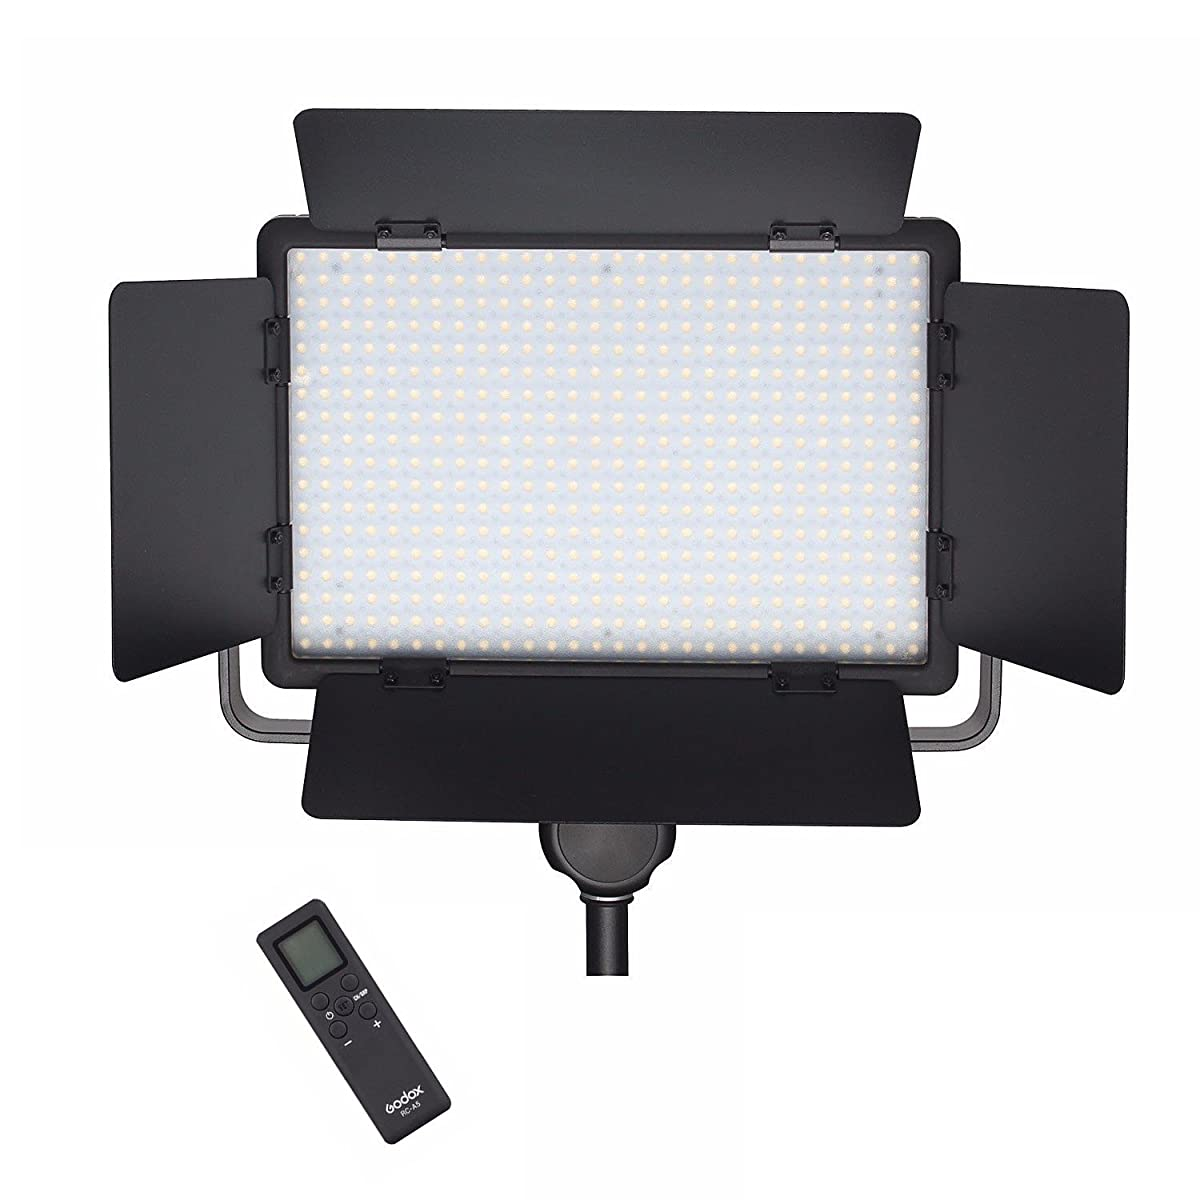 Godox LED500W(AC&DC) 5600K Studio LED Video Light Panel w/ Remote For Camera Camcorder with WINGONEER Diffuser